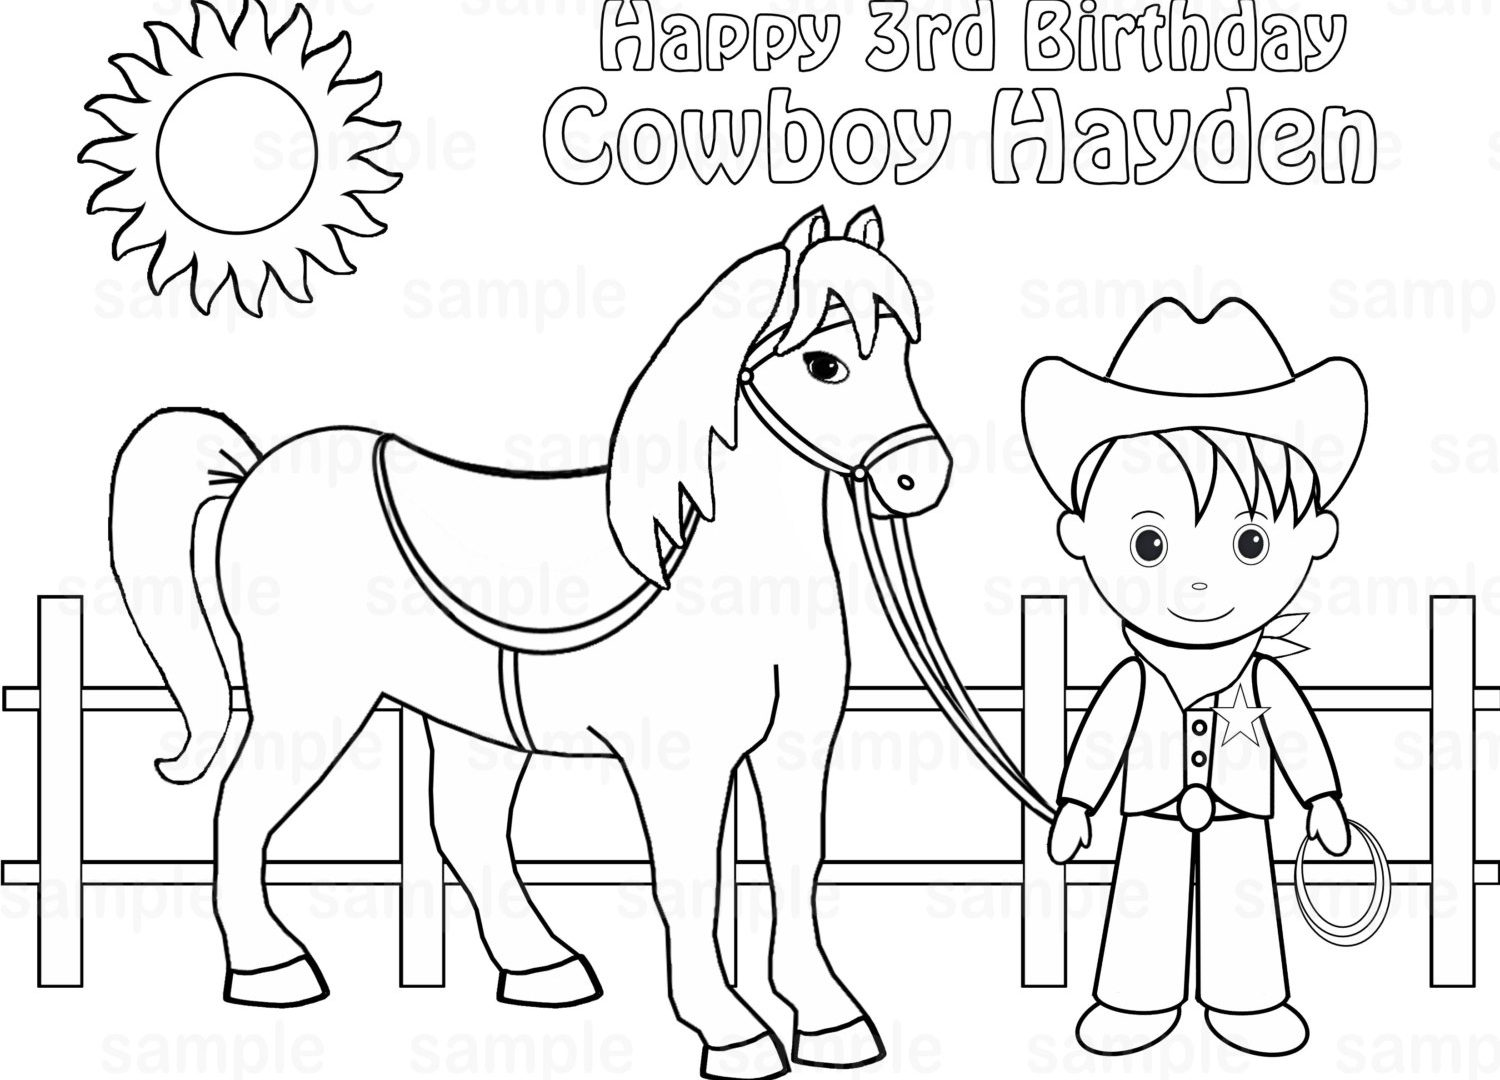 Cowgirl And Cowboy Coloring Pages At Getcolorings